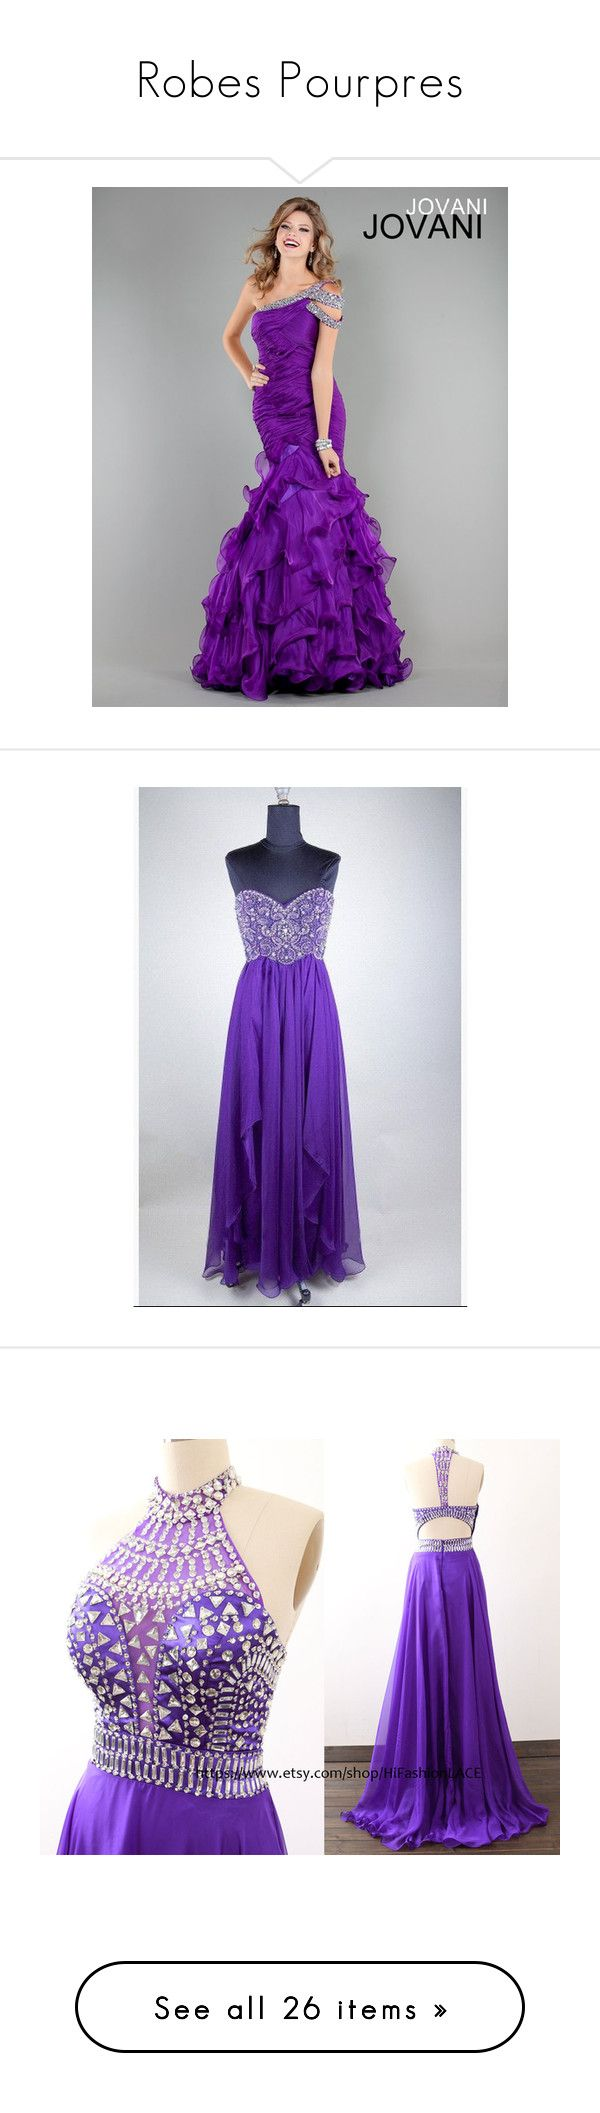 """""""Robes Pourpres"""" by artemisa-538 ❤ liked on Polyvore featuring long dresses, dresses, black, women's clothing, purple formal dresses, a line dress, long purple dress, long formal dresses, long chiffon dress and sequin tulle dress"""